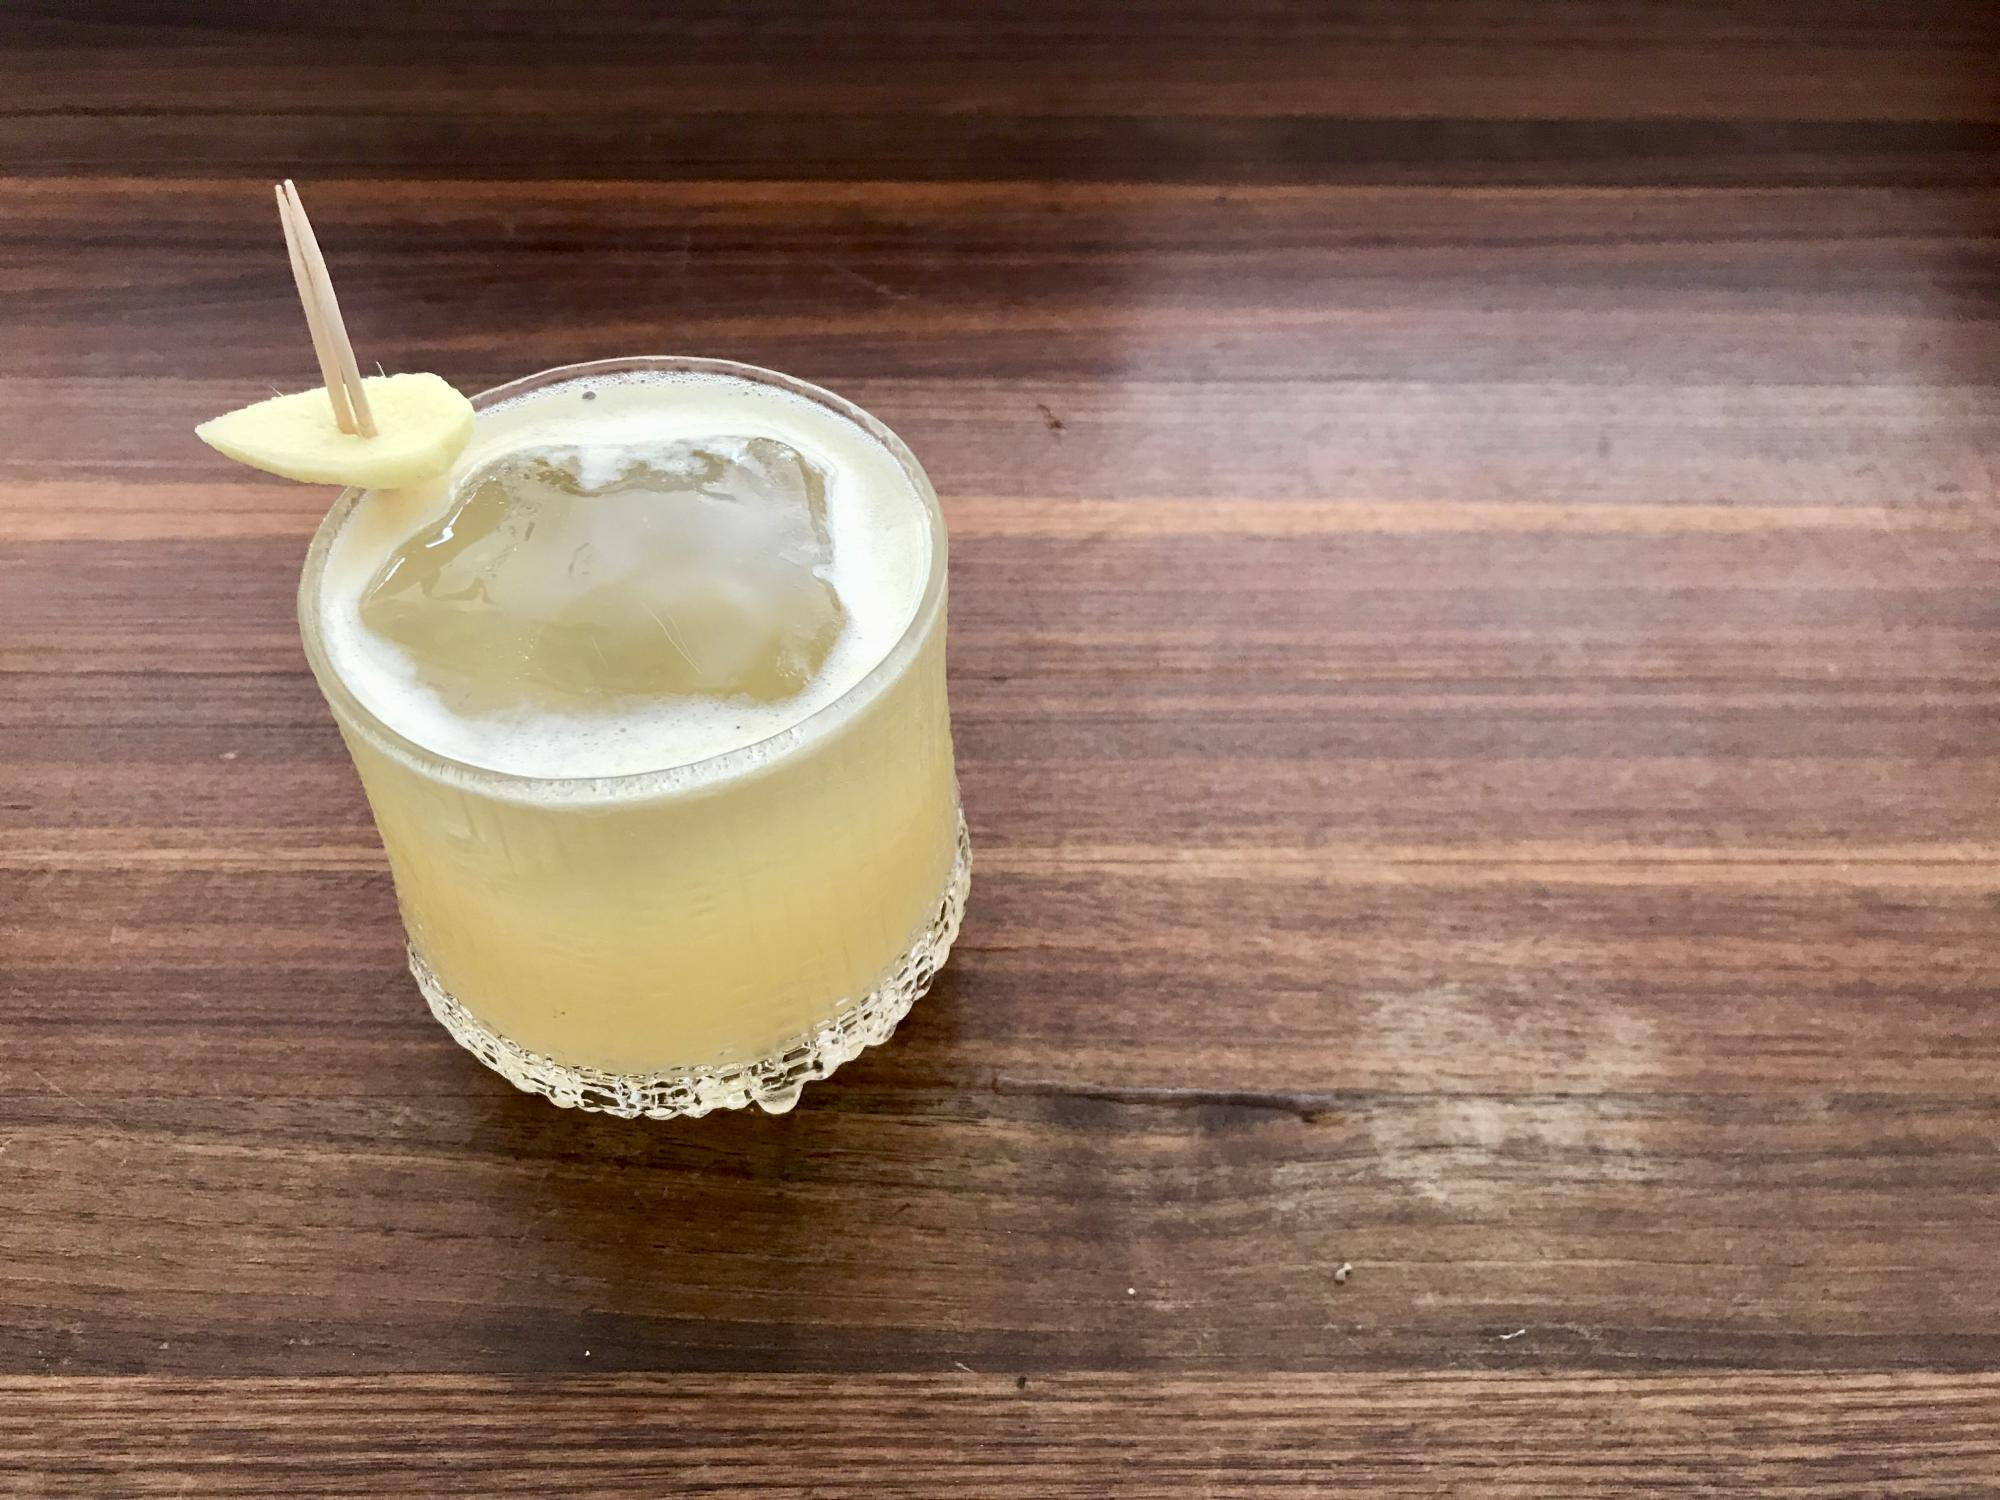 Recept Penicillin - Läkemedlet för Scotch Whiskey i cocktails